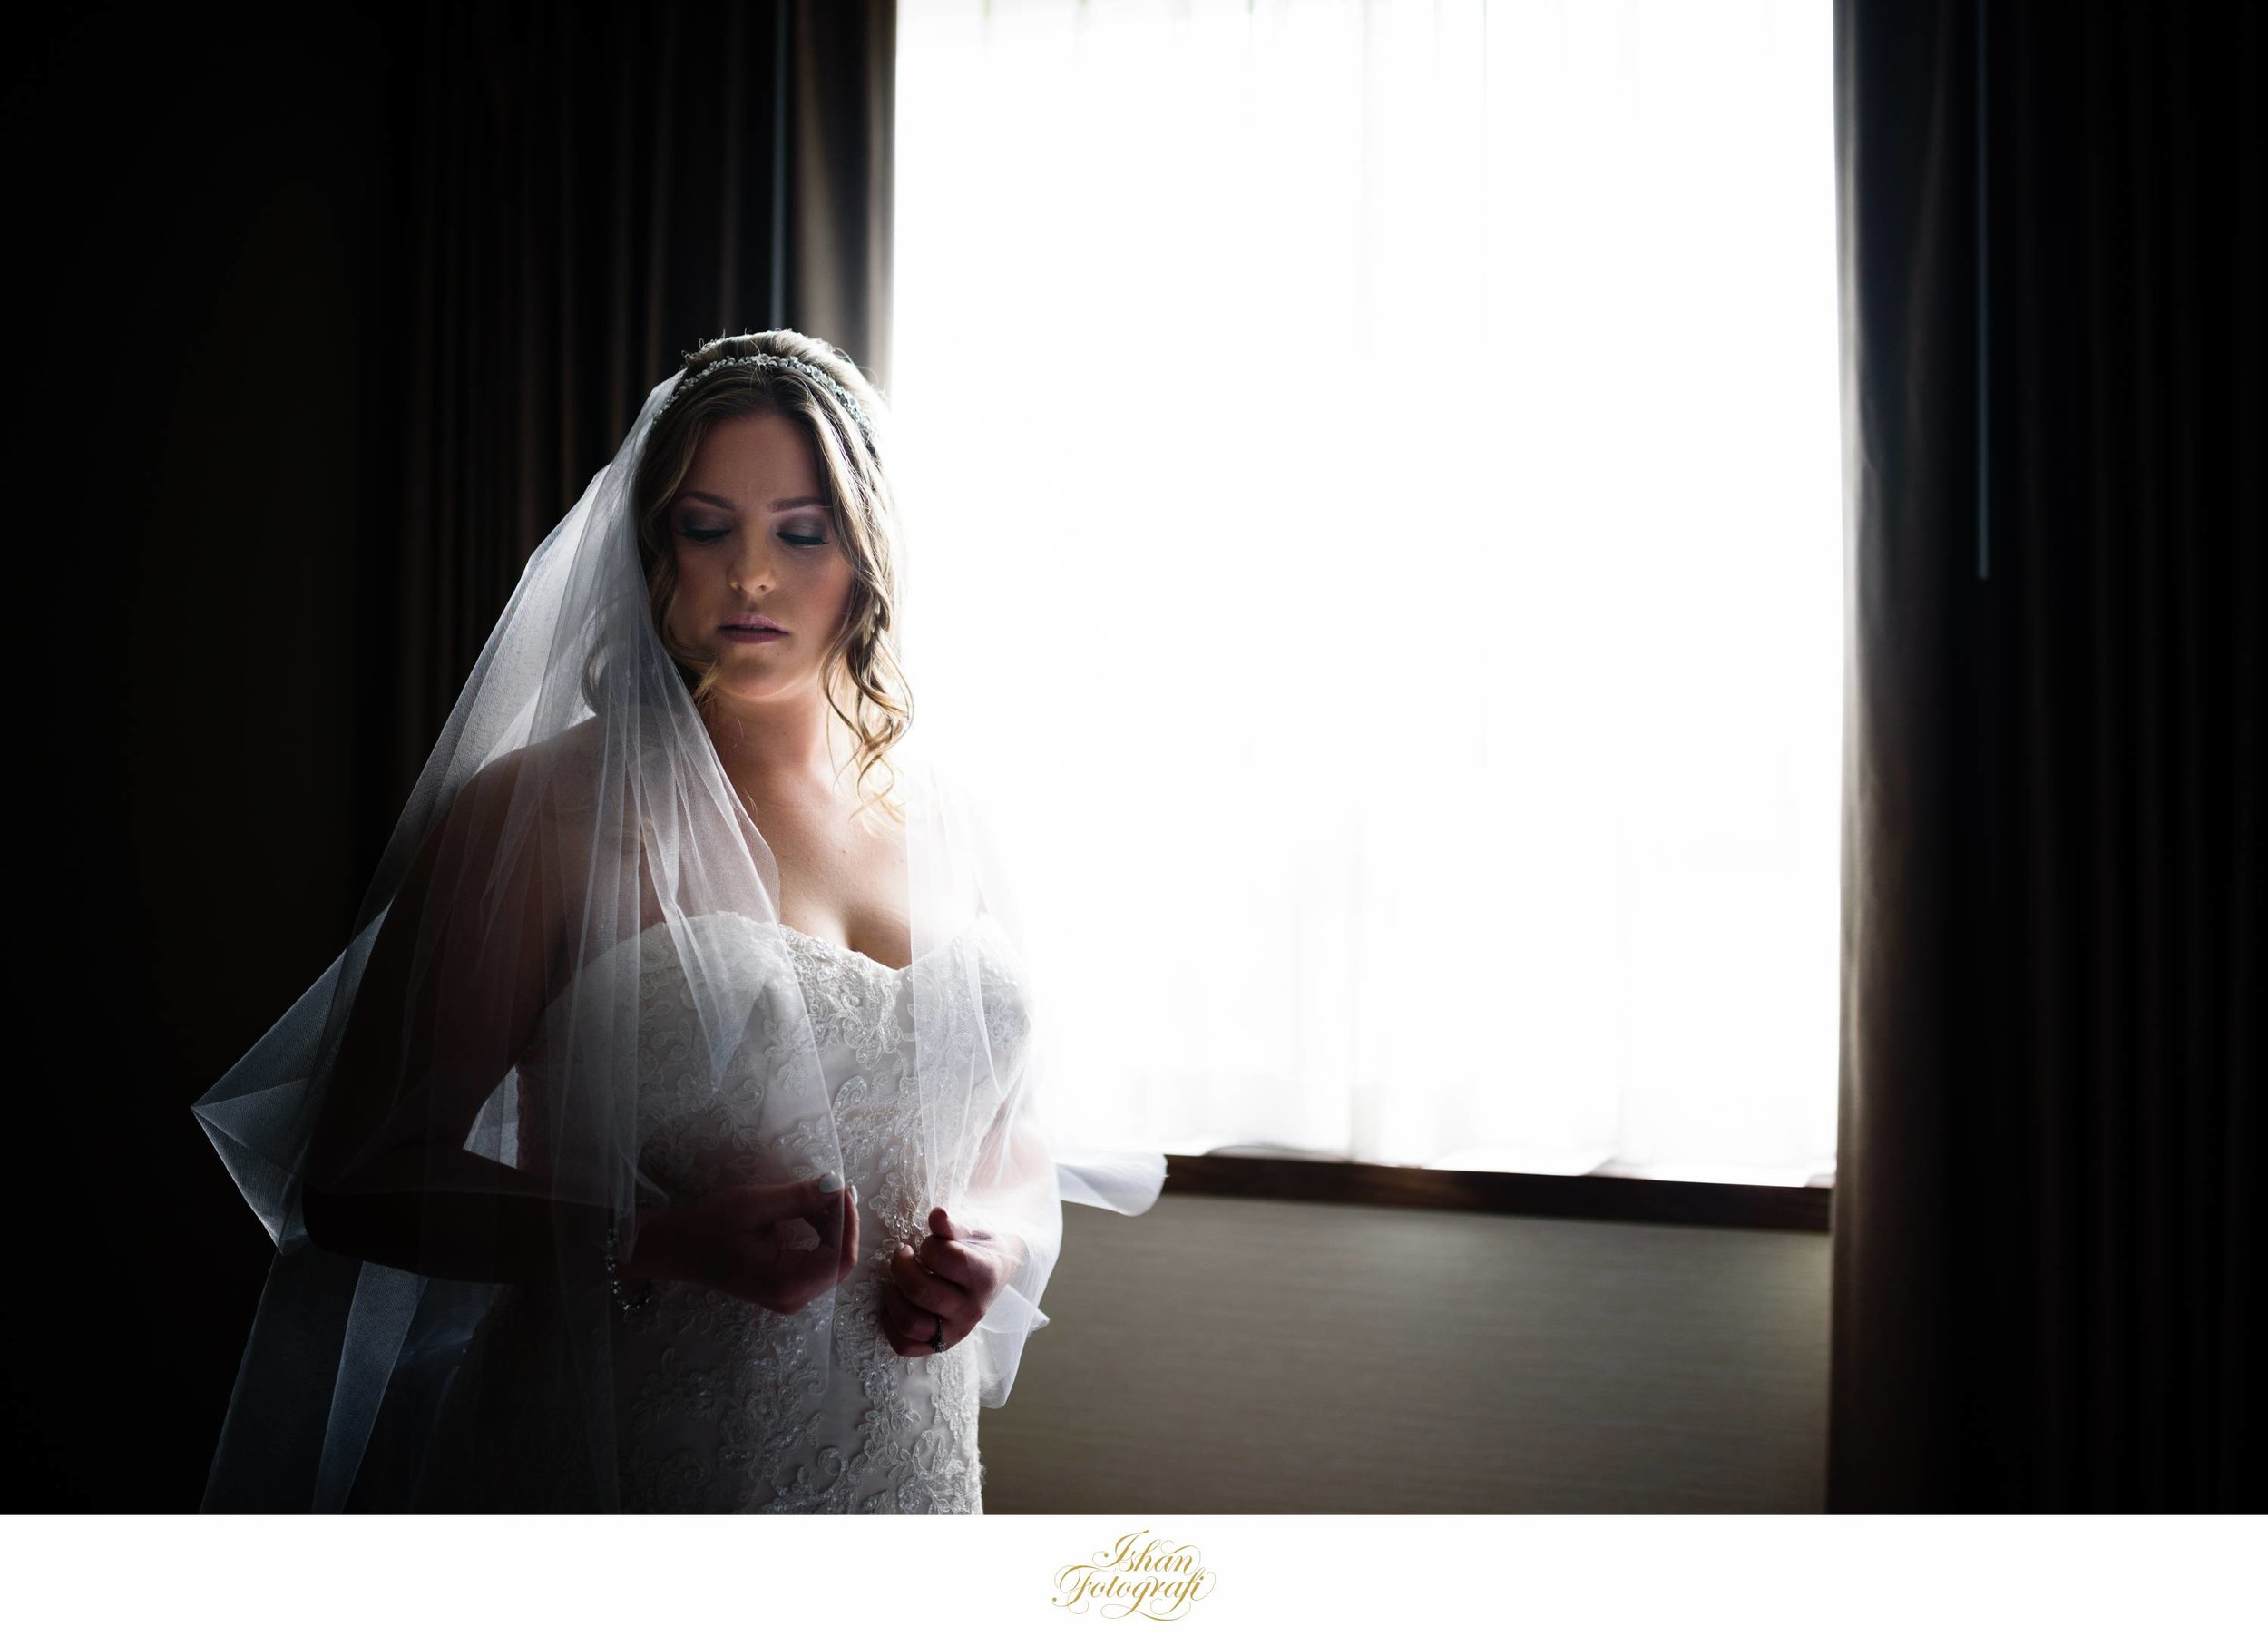 Using the same light and slightly changing our perspective allowed use to create this very moody image of our stunning bride.